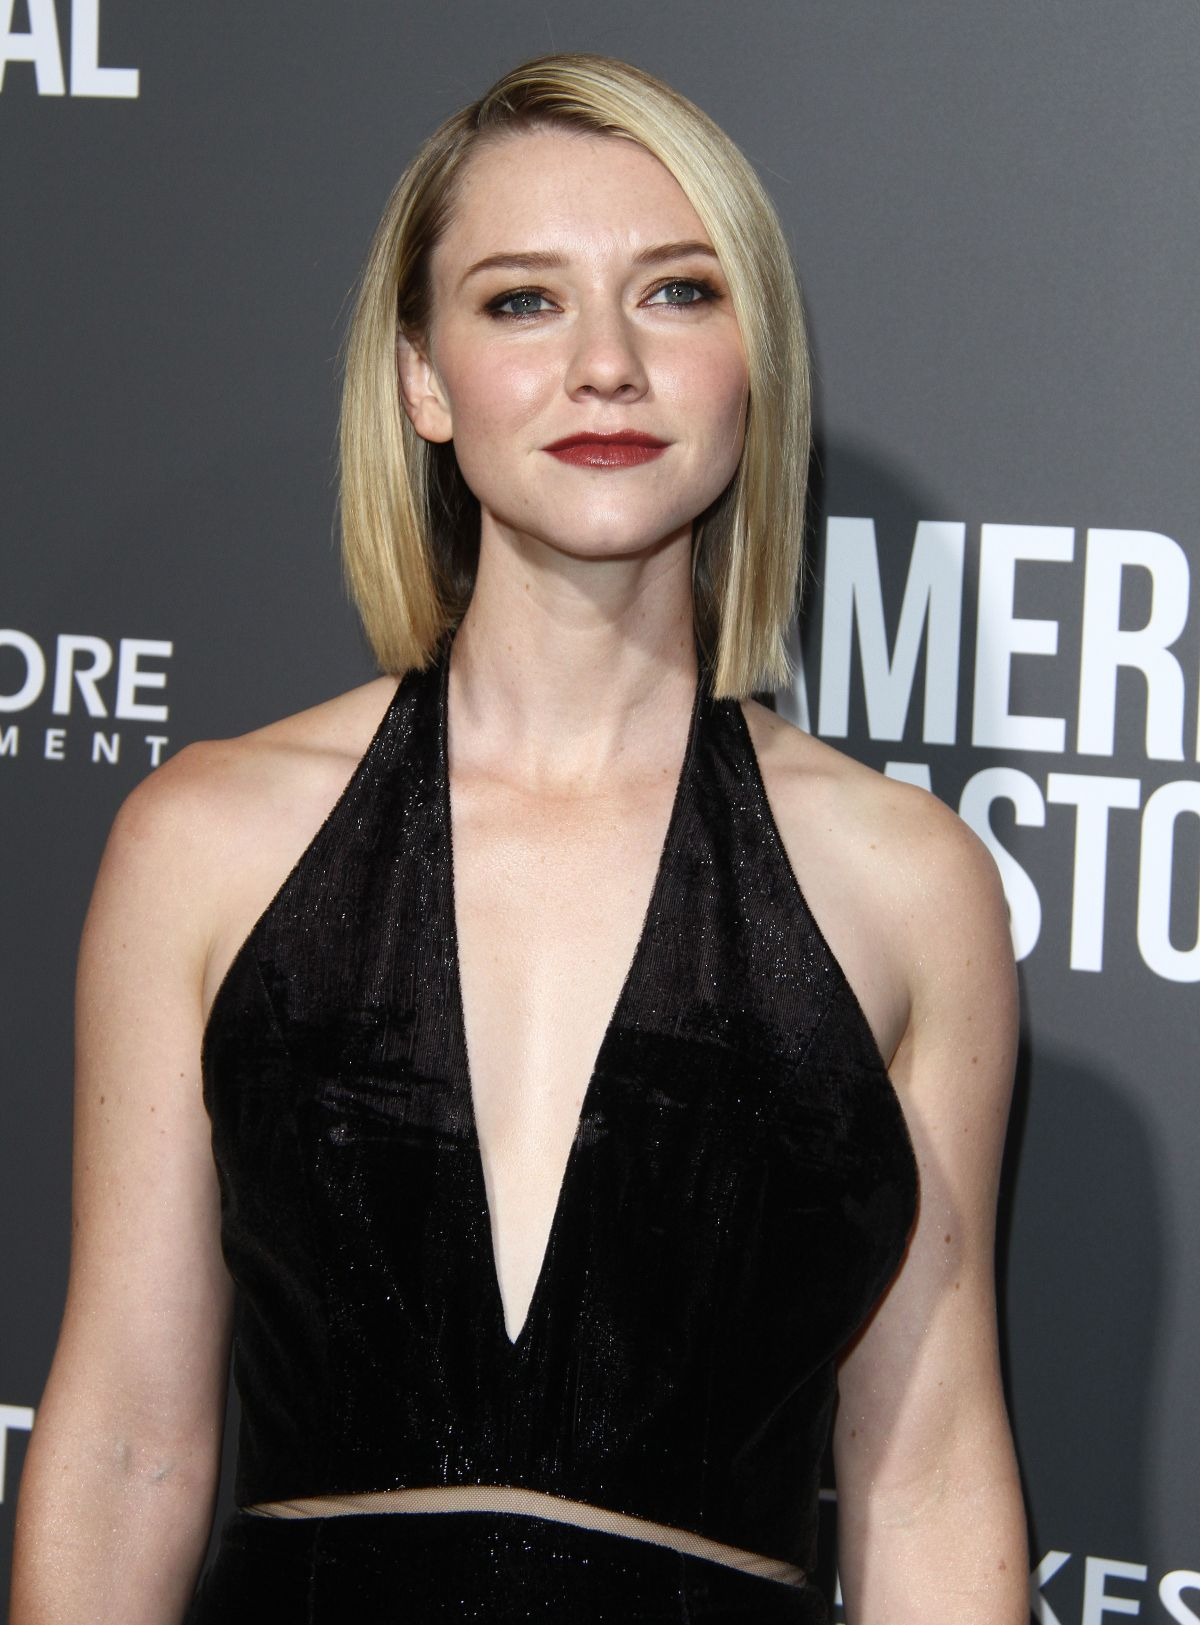 Valorie Curry nude (36 foto and video), Tits, Cleavage, Twitter, braless 2017